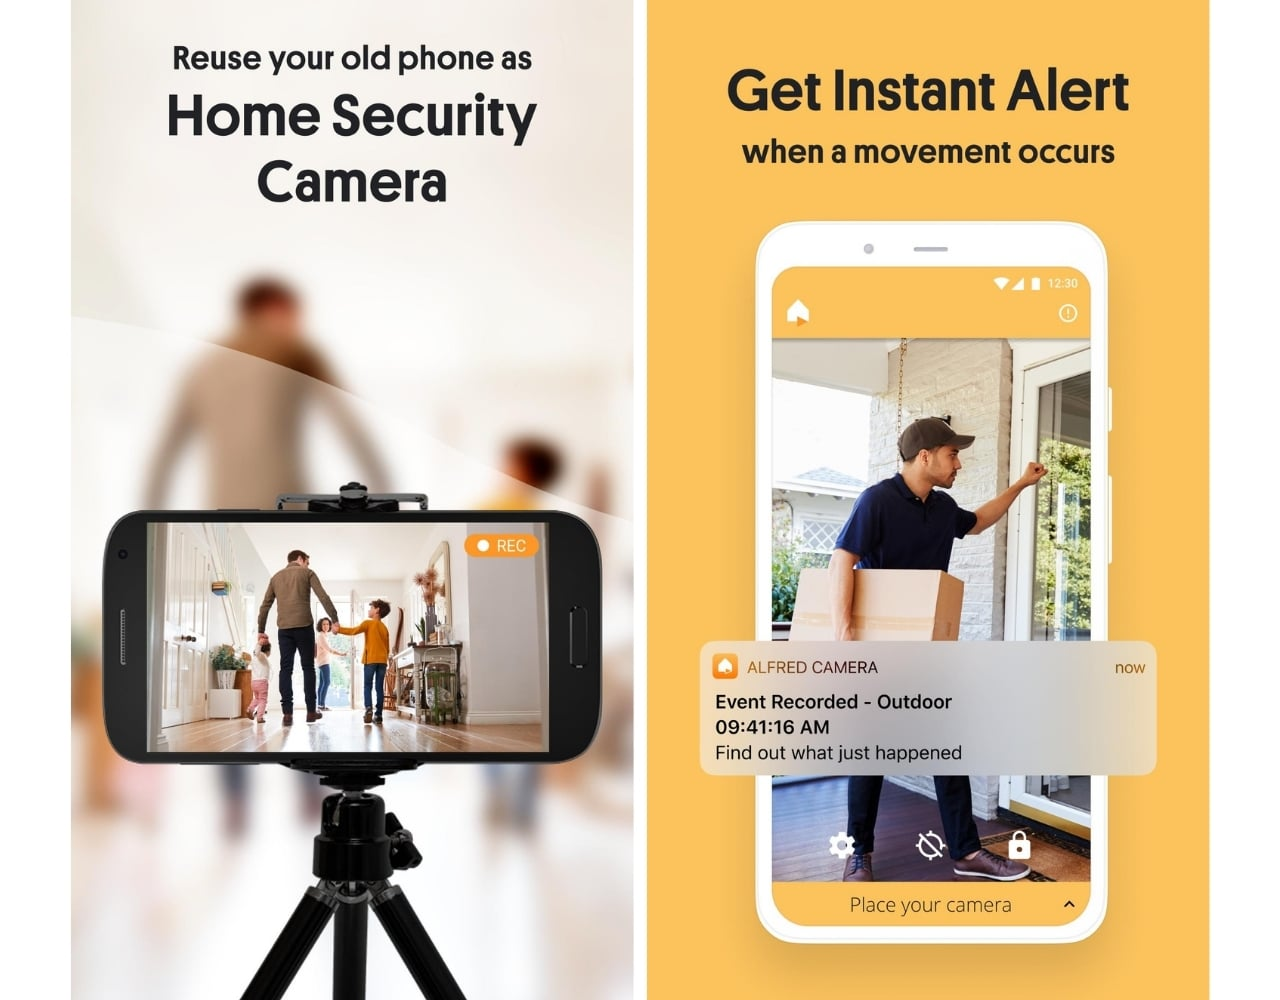 Home Security Camera app for android